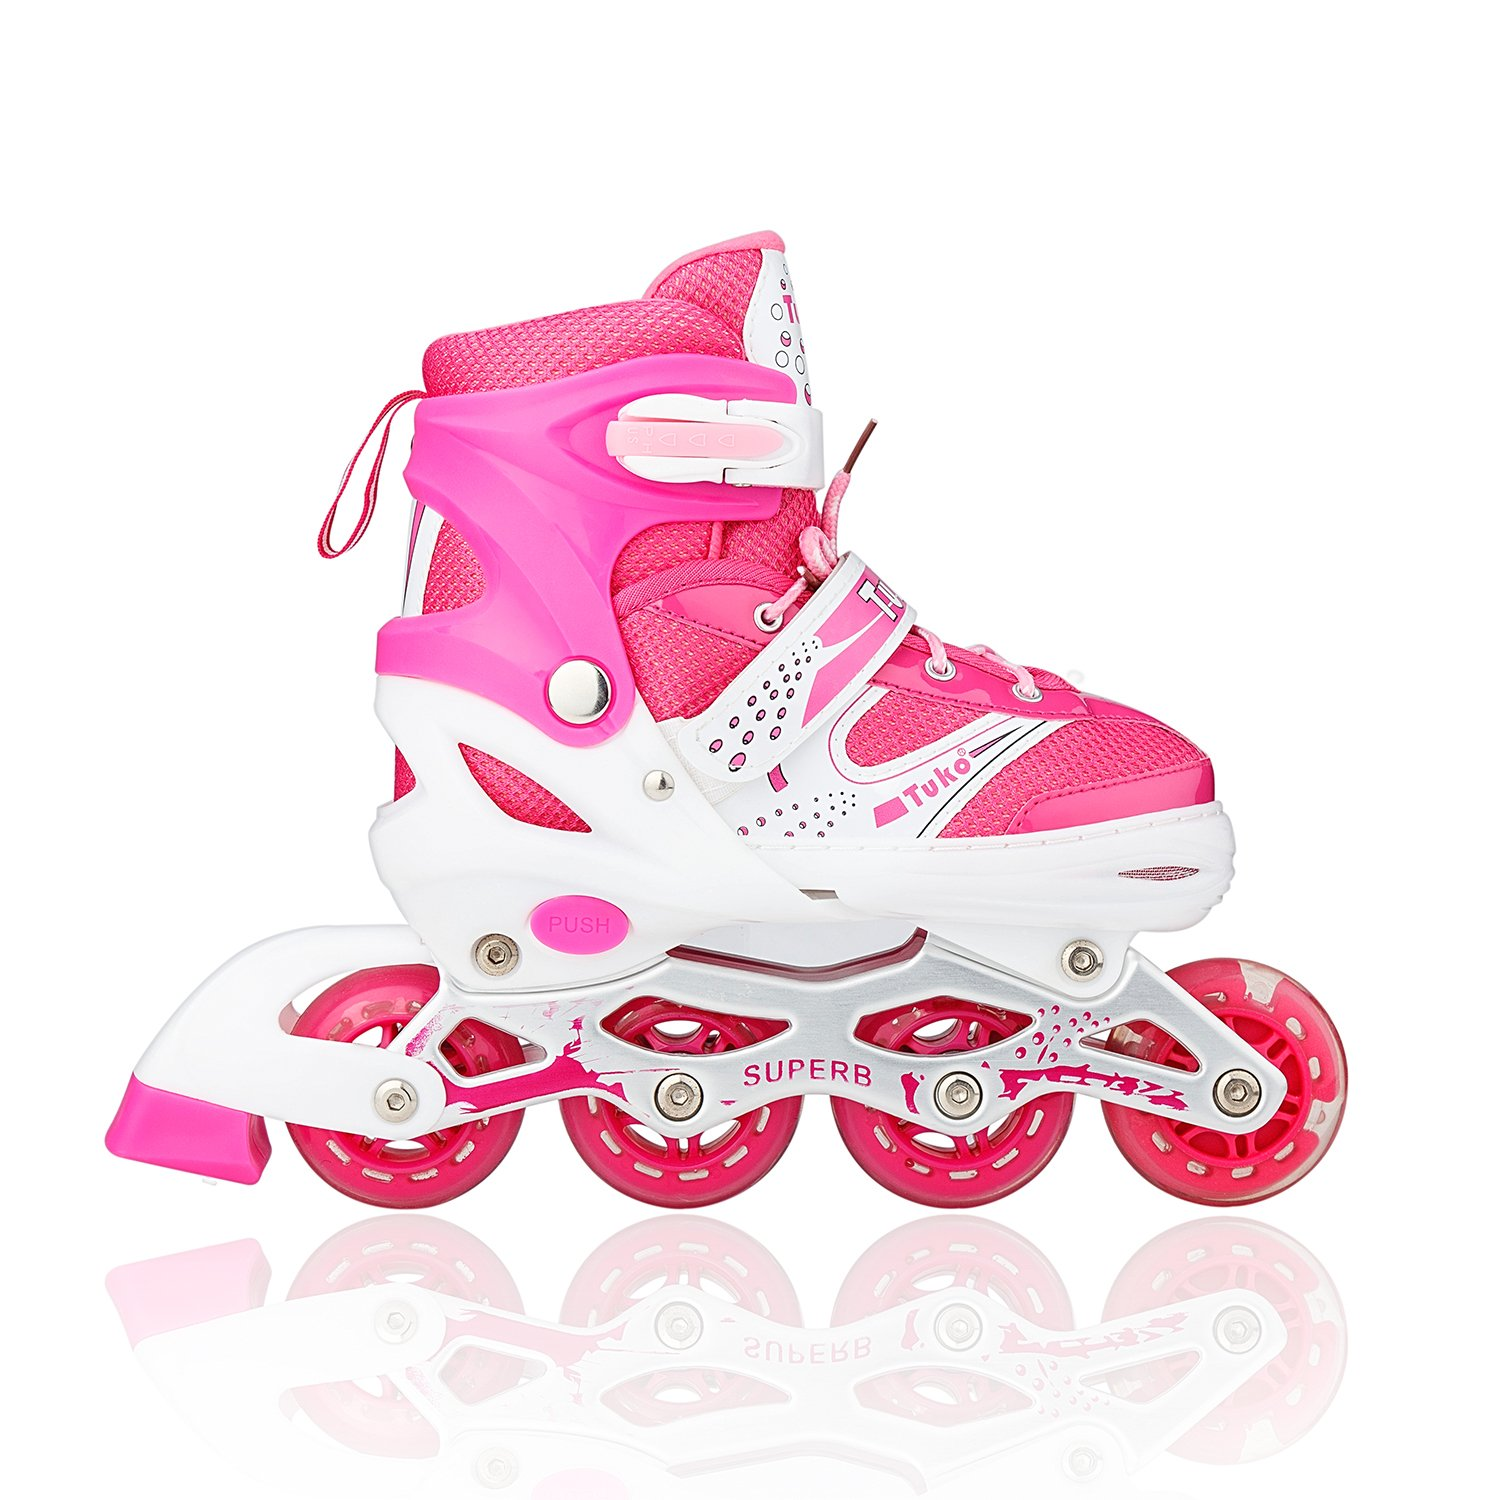 Tuko Children Adjustable Inline Skate Roler Shoes for Girl Gift (Medium/Big kids 2M/3M/4M)